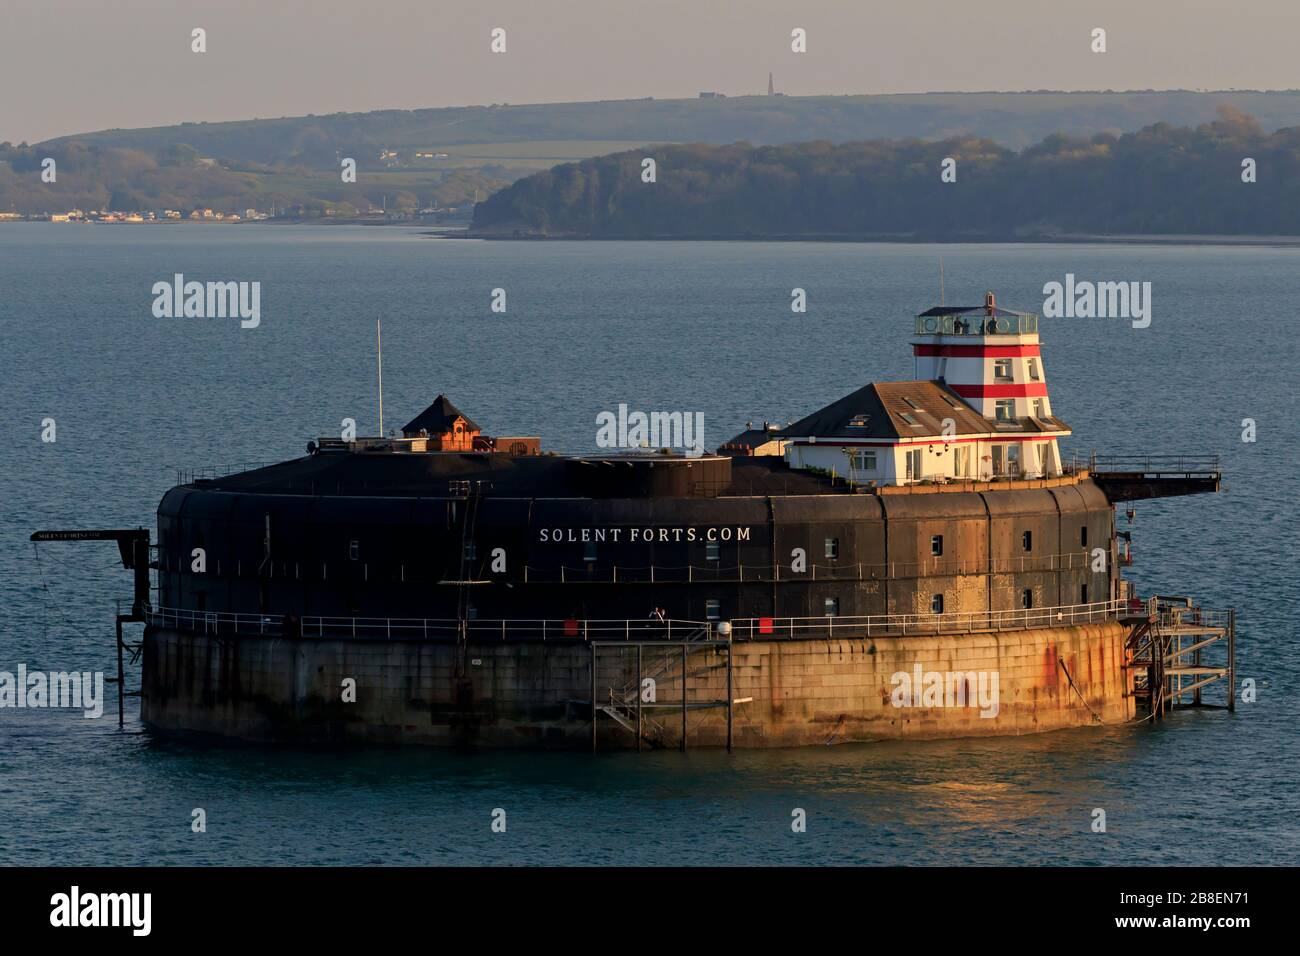 No Man's Fort on the Solent, Portsmouth, Hampshire, England, United Kingdom Stock Photo